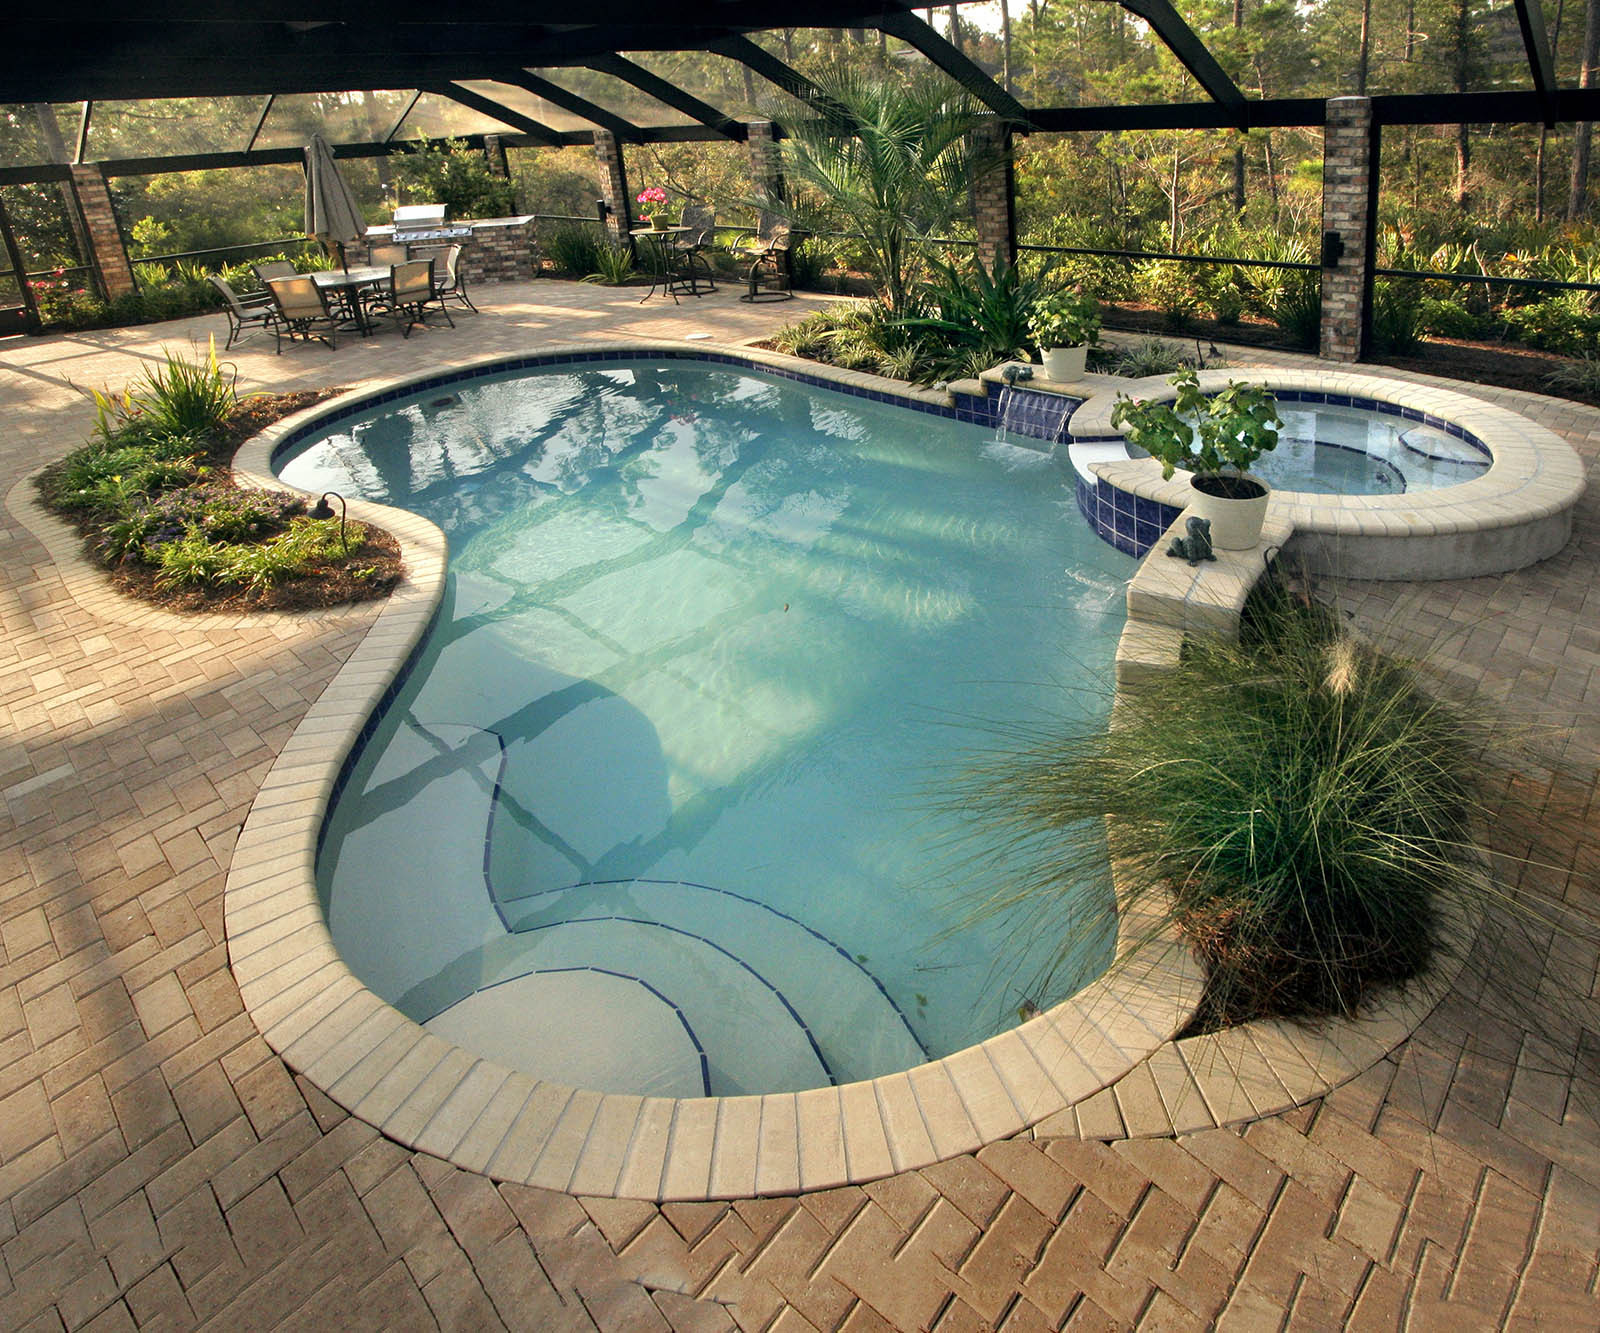 Best ideas about Inground Pool Deck . Save or Pin Best swimming pool deck ideas Now.